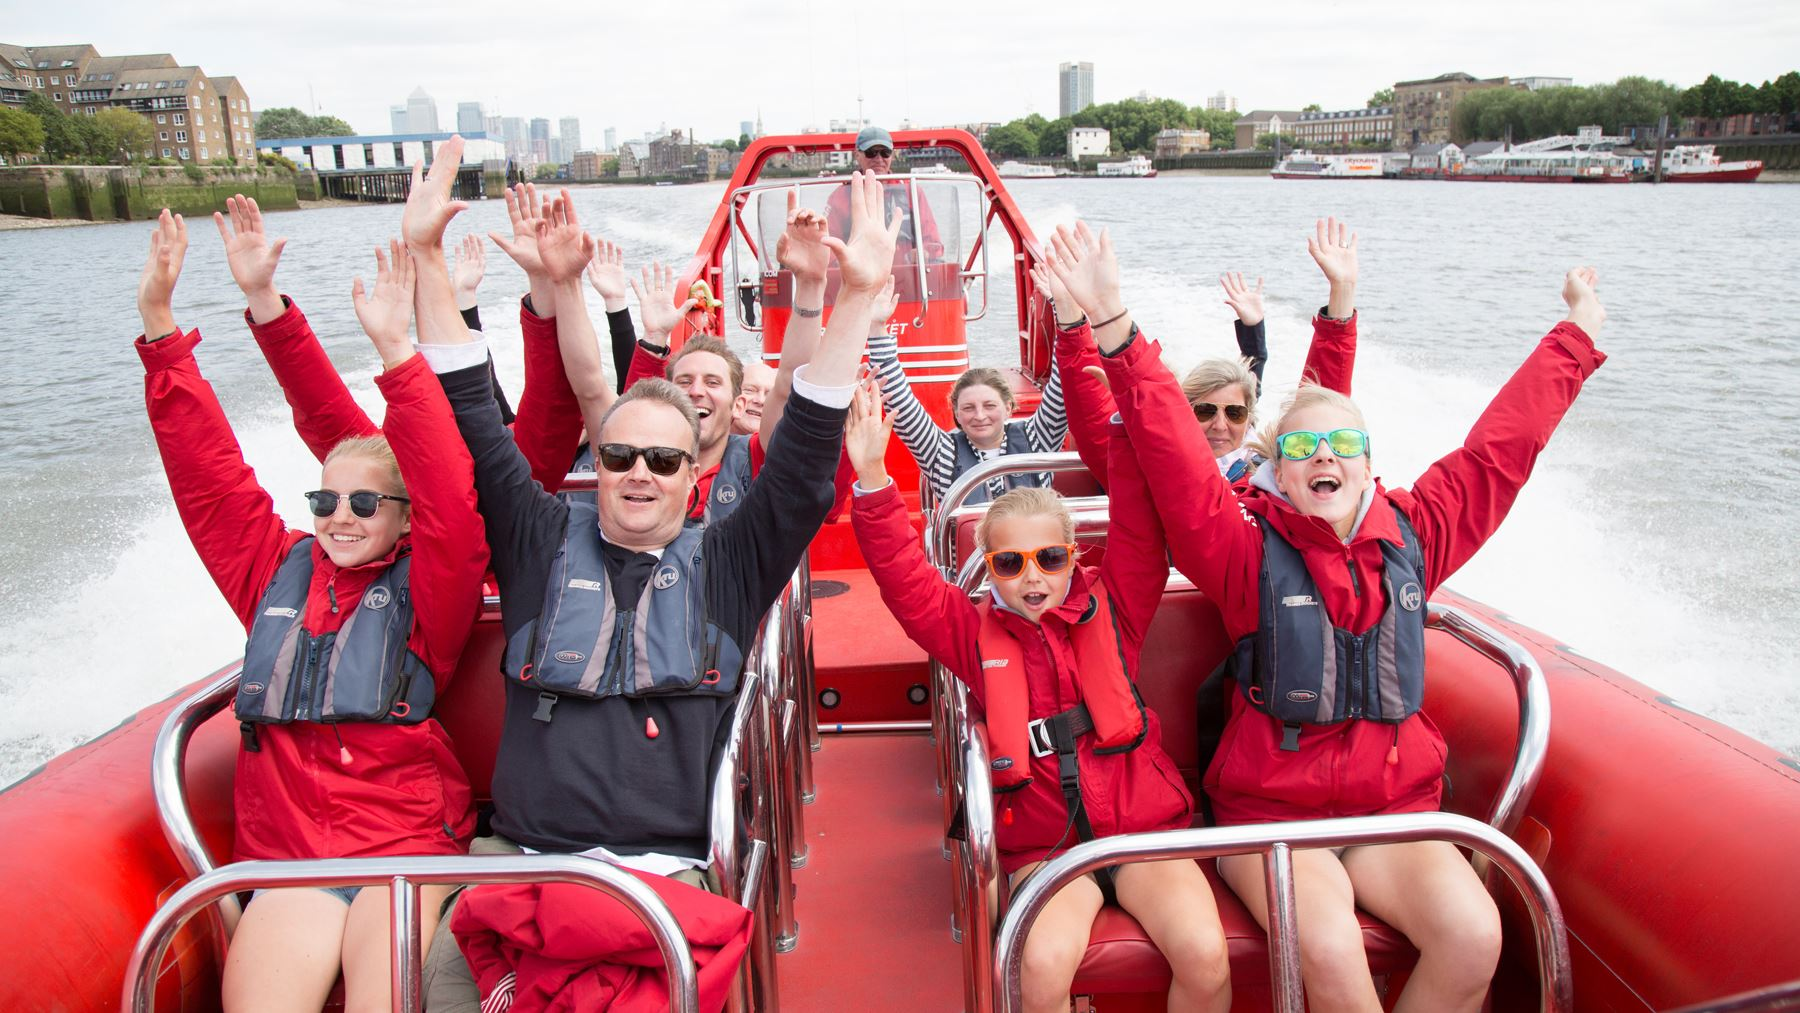 Summer Holiday ideas in London